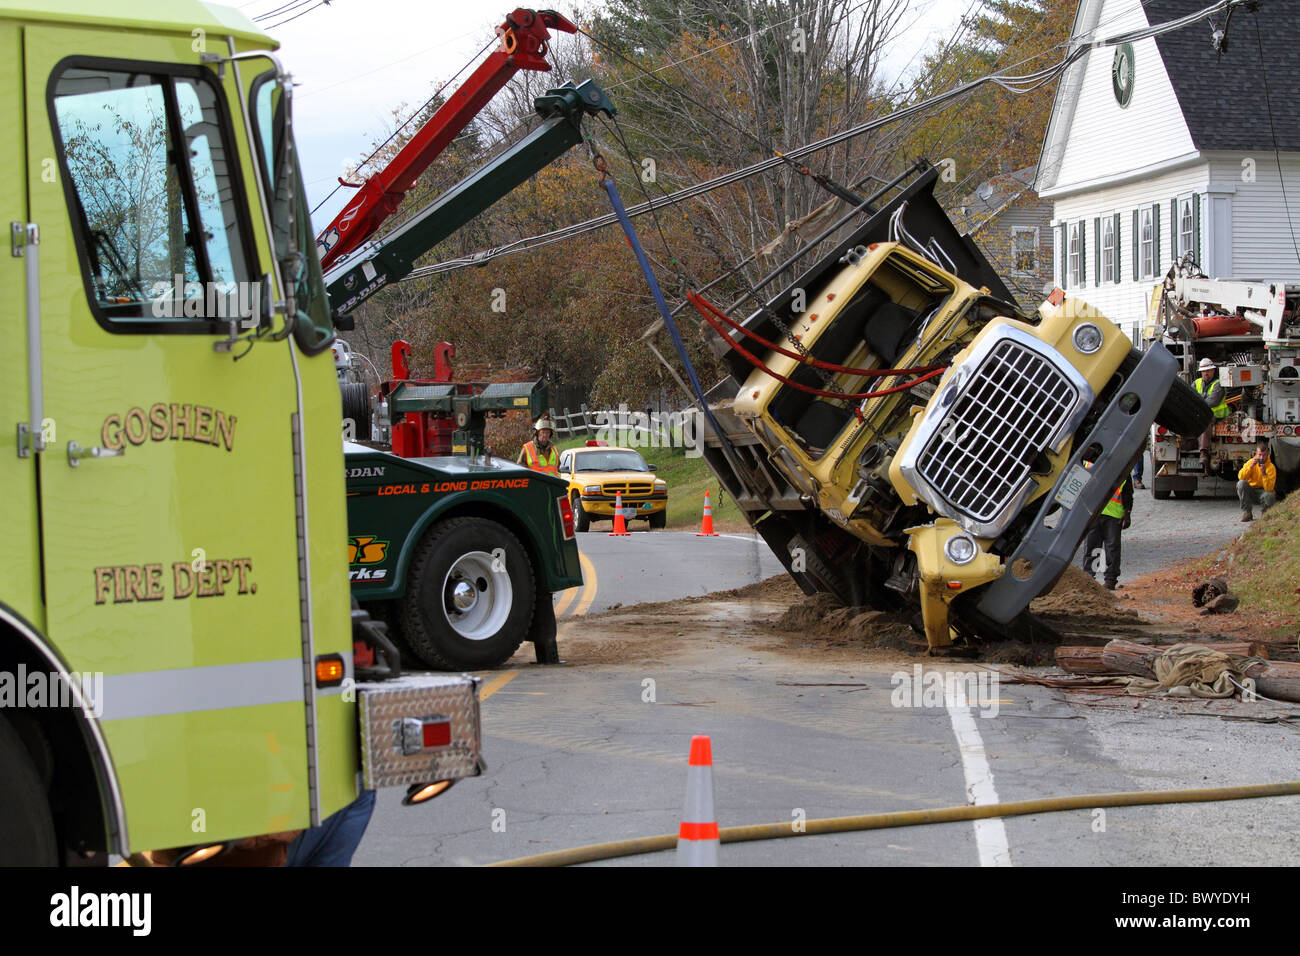 Dumptruck overturned in a traffic accident, emergency personnel responding to the accident scene, uprighting overturned - Stock Image